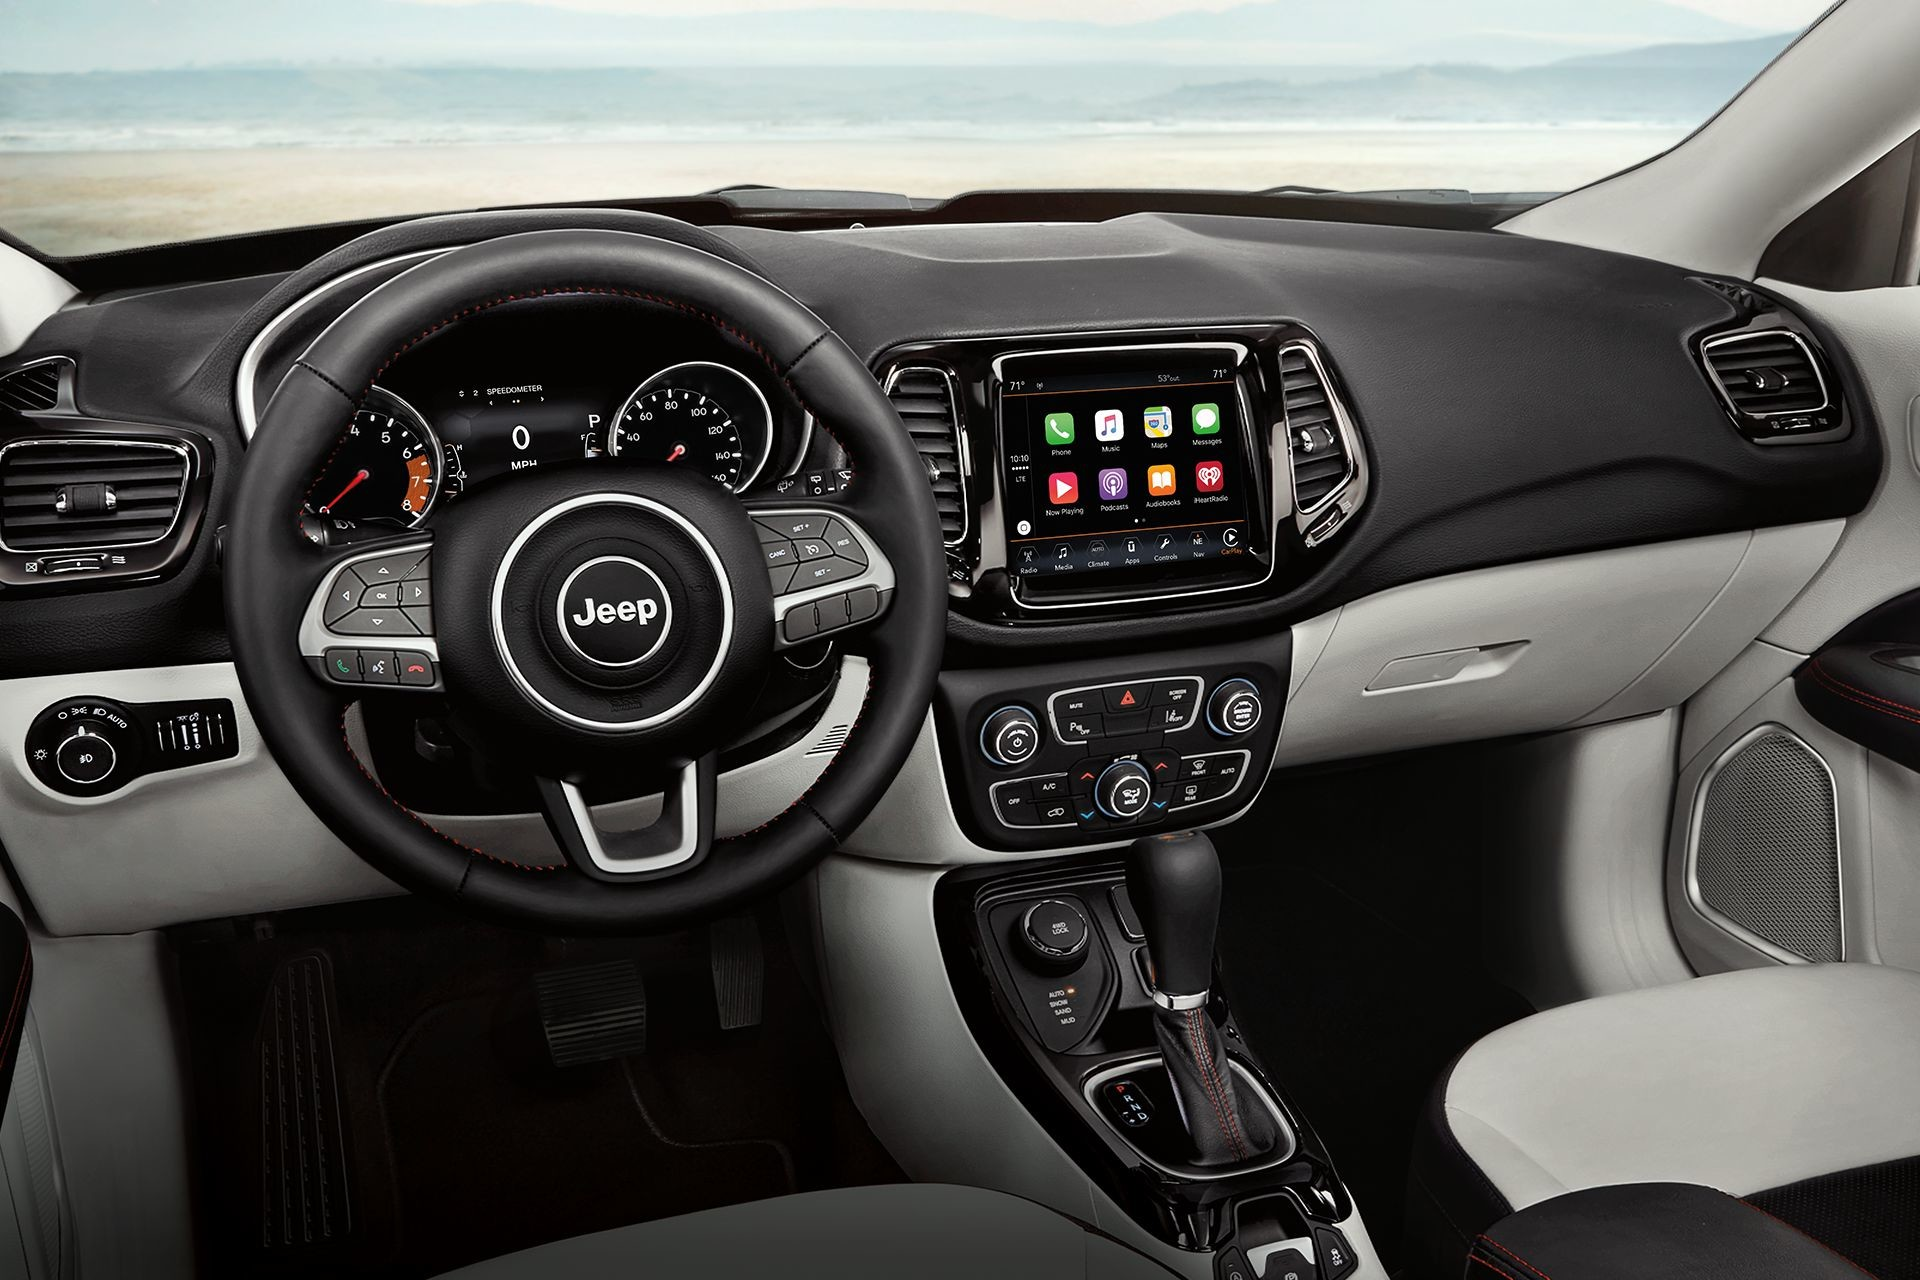 2019 Jeep Compass driver's view of interior console